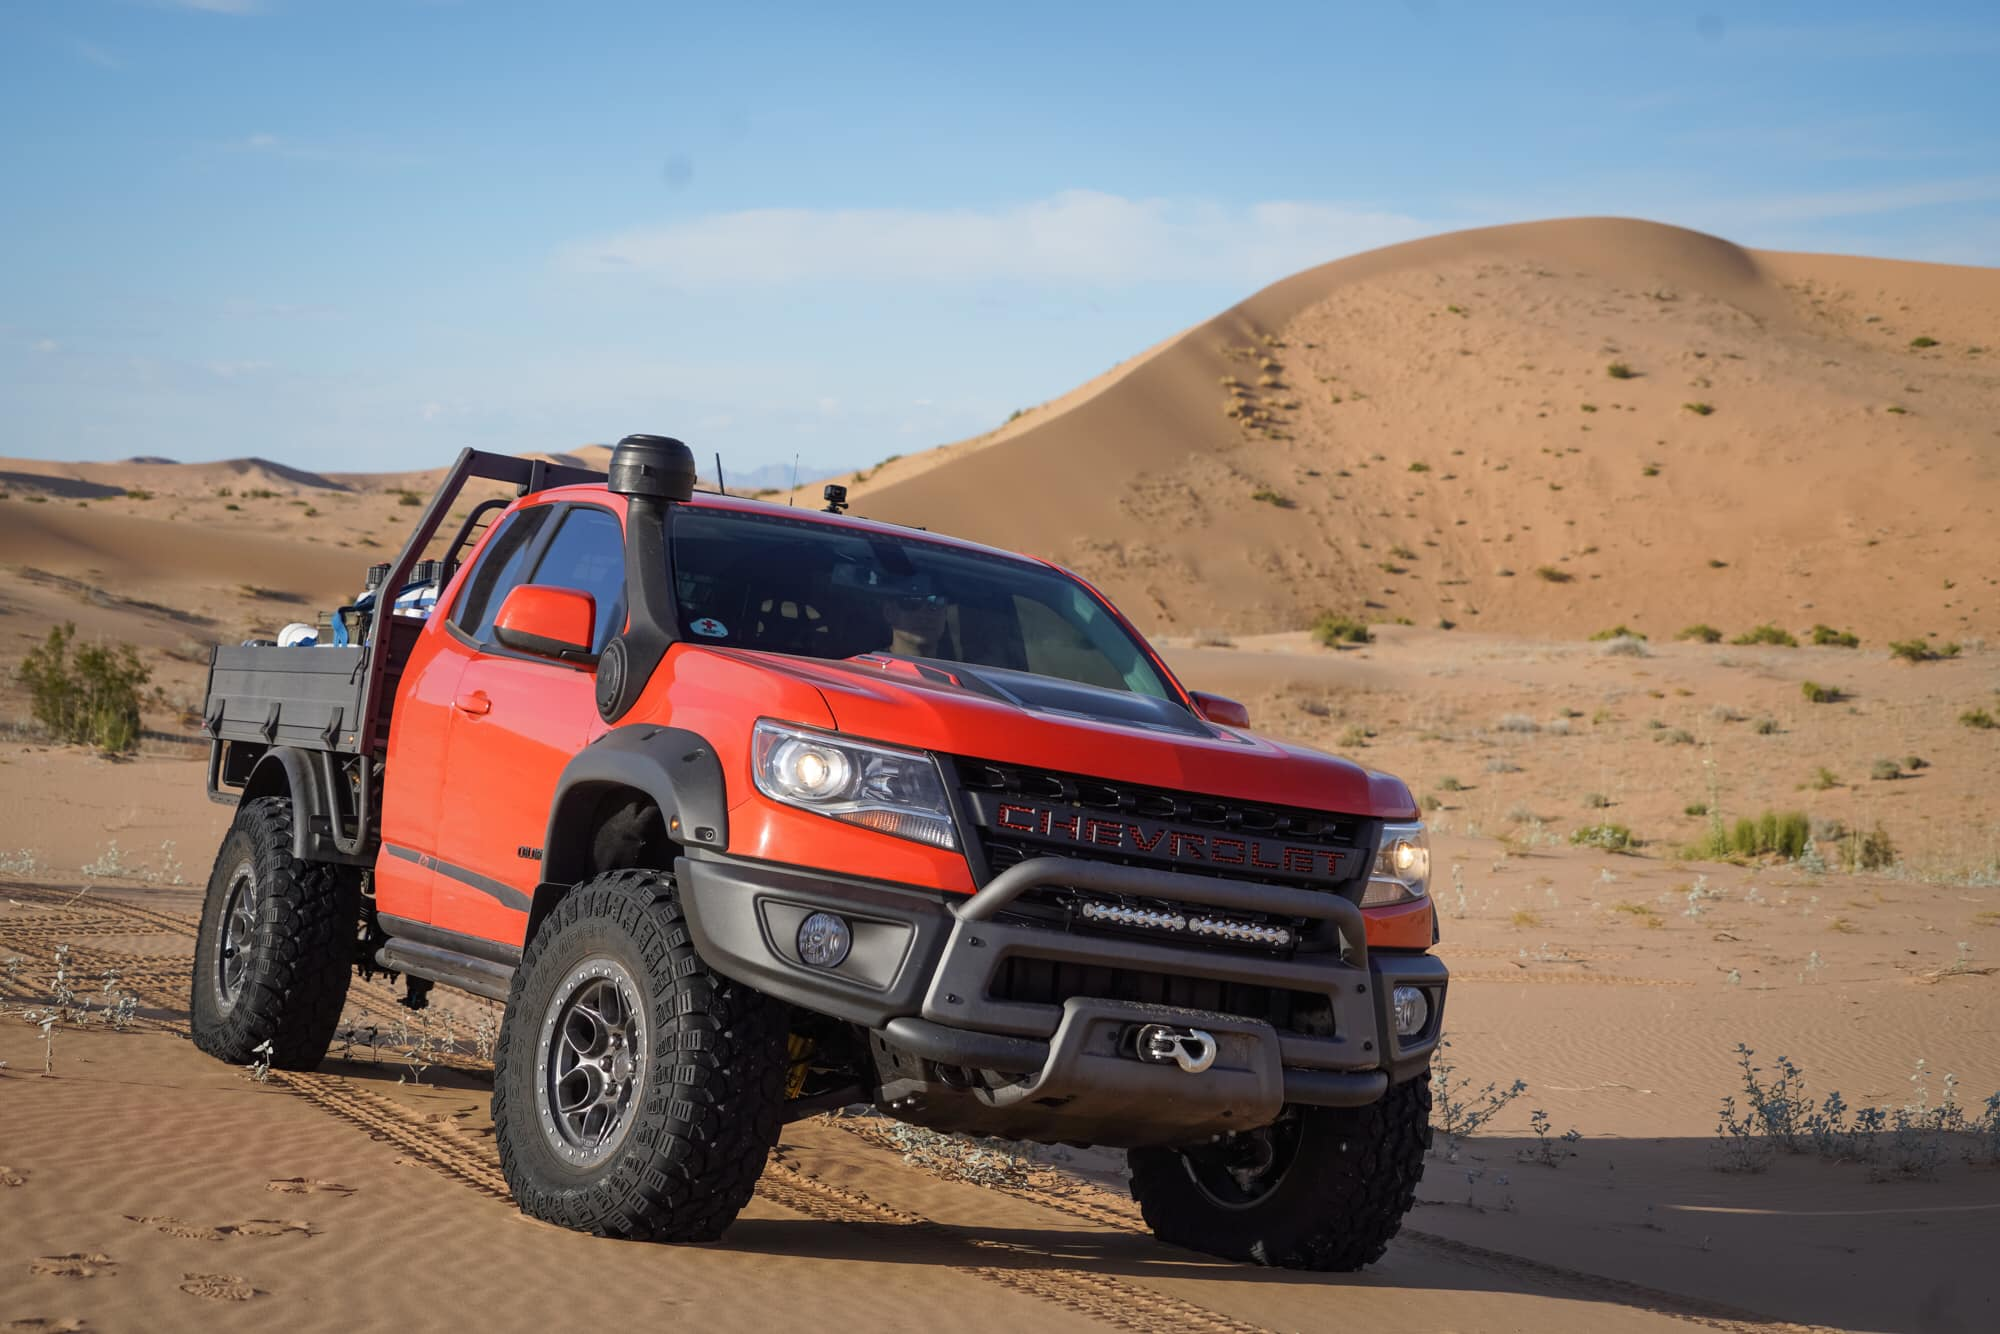 2019 Chevy Colorado Bison Zr2 Aev Tray Bed Concept Is One